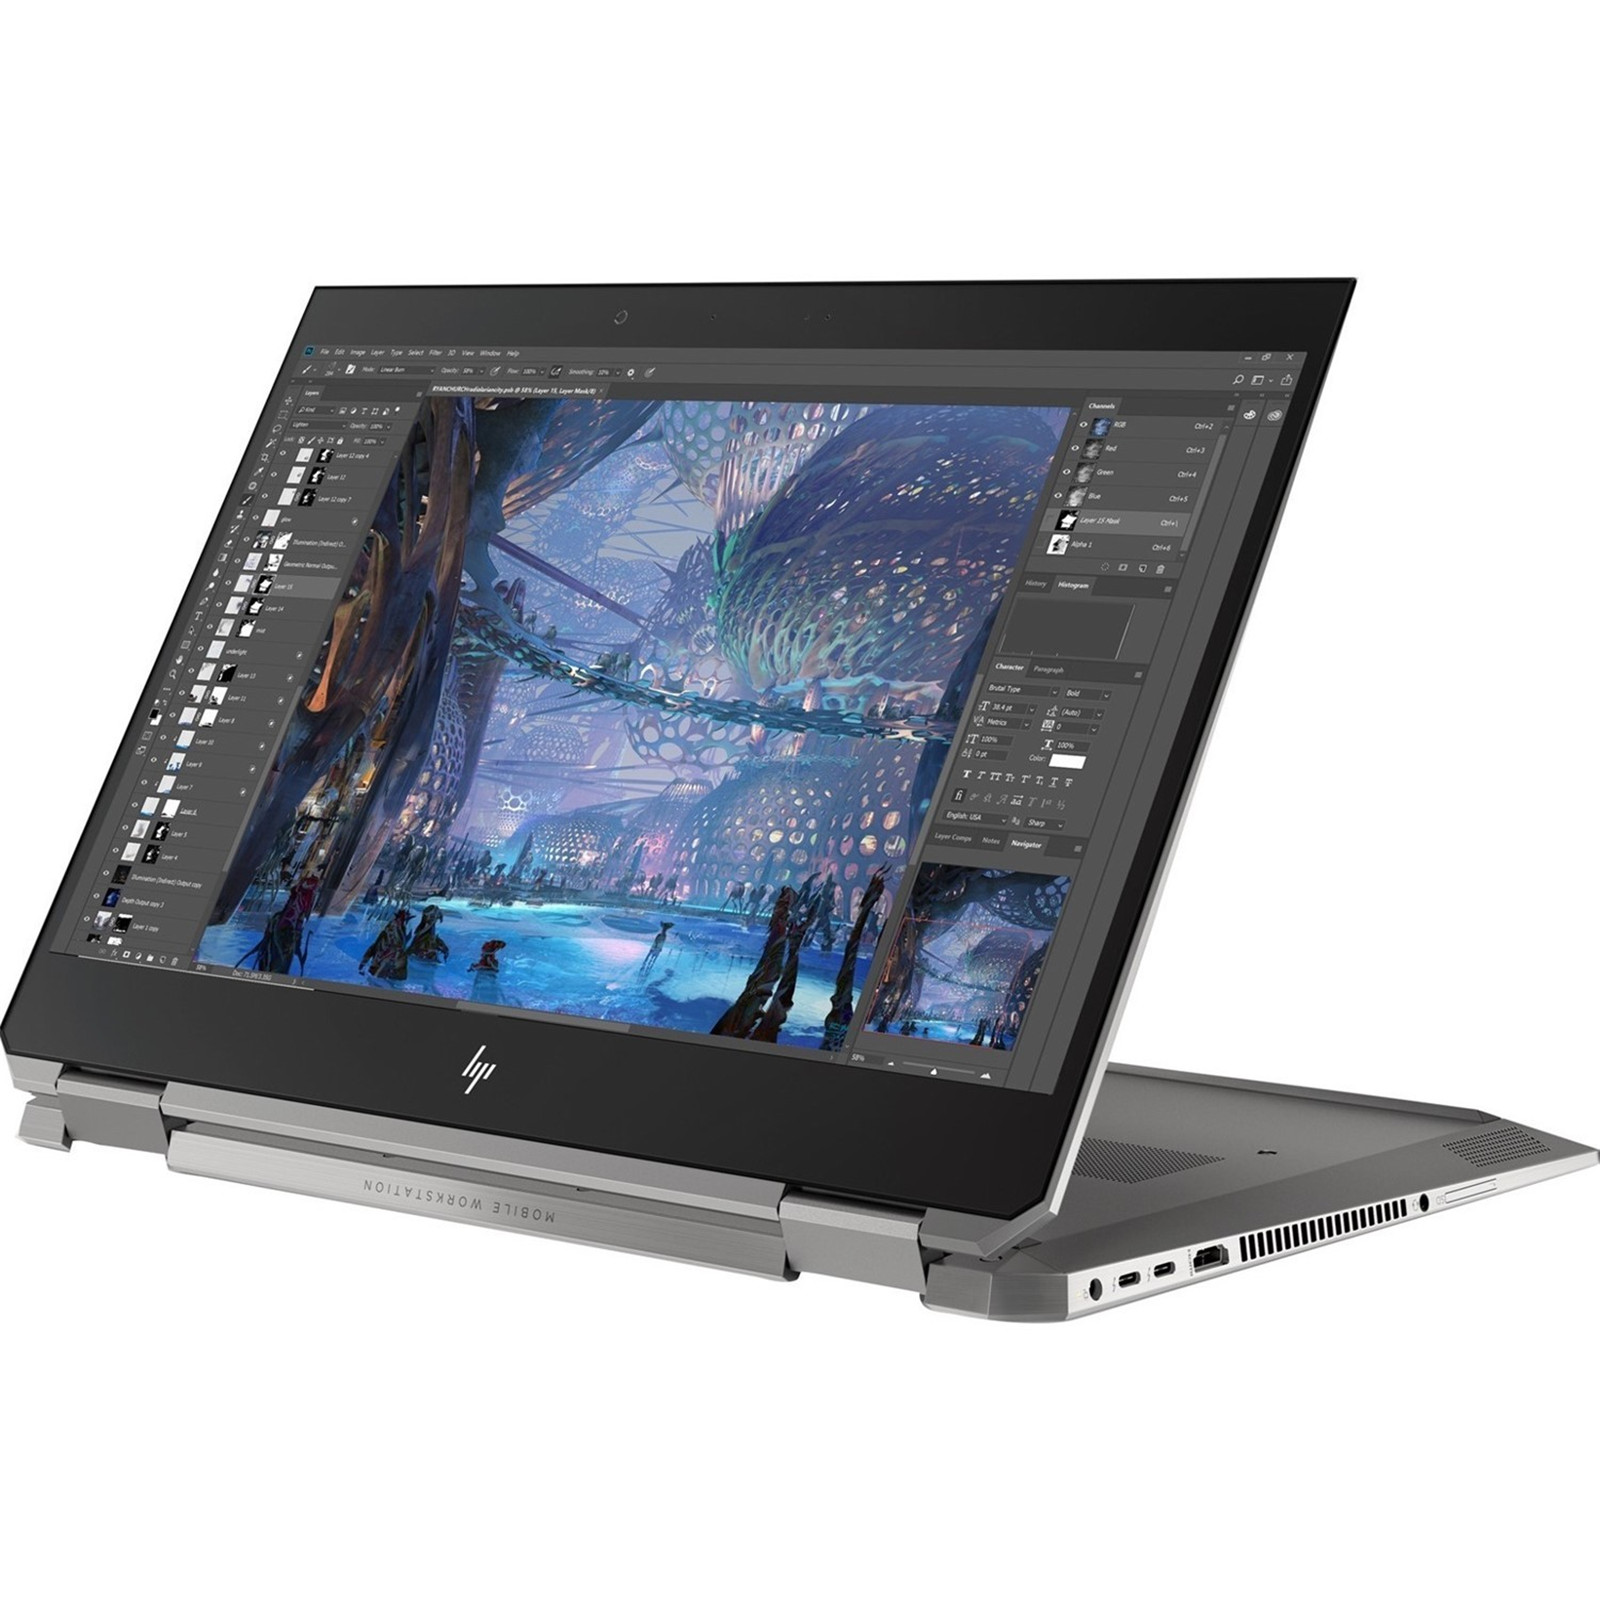 "HP Zbook Studio x360 G5 4G LTE 2in1 Mobile Workstaion 15 6"" FHD Touchscreen Intel i7 8550H 32GB 2TB SSD NO DVD Quadro P1000 4GB Graphics Win10Pro 64bit 3yr"